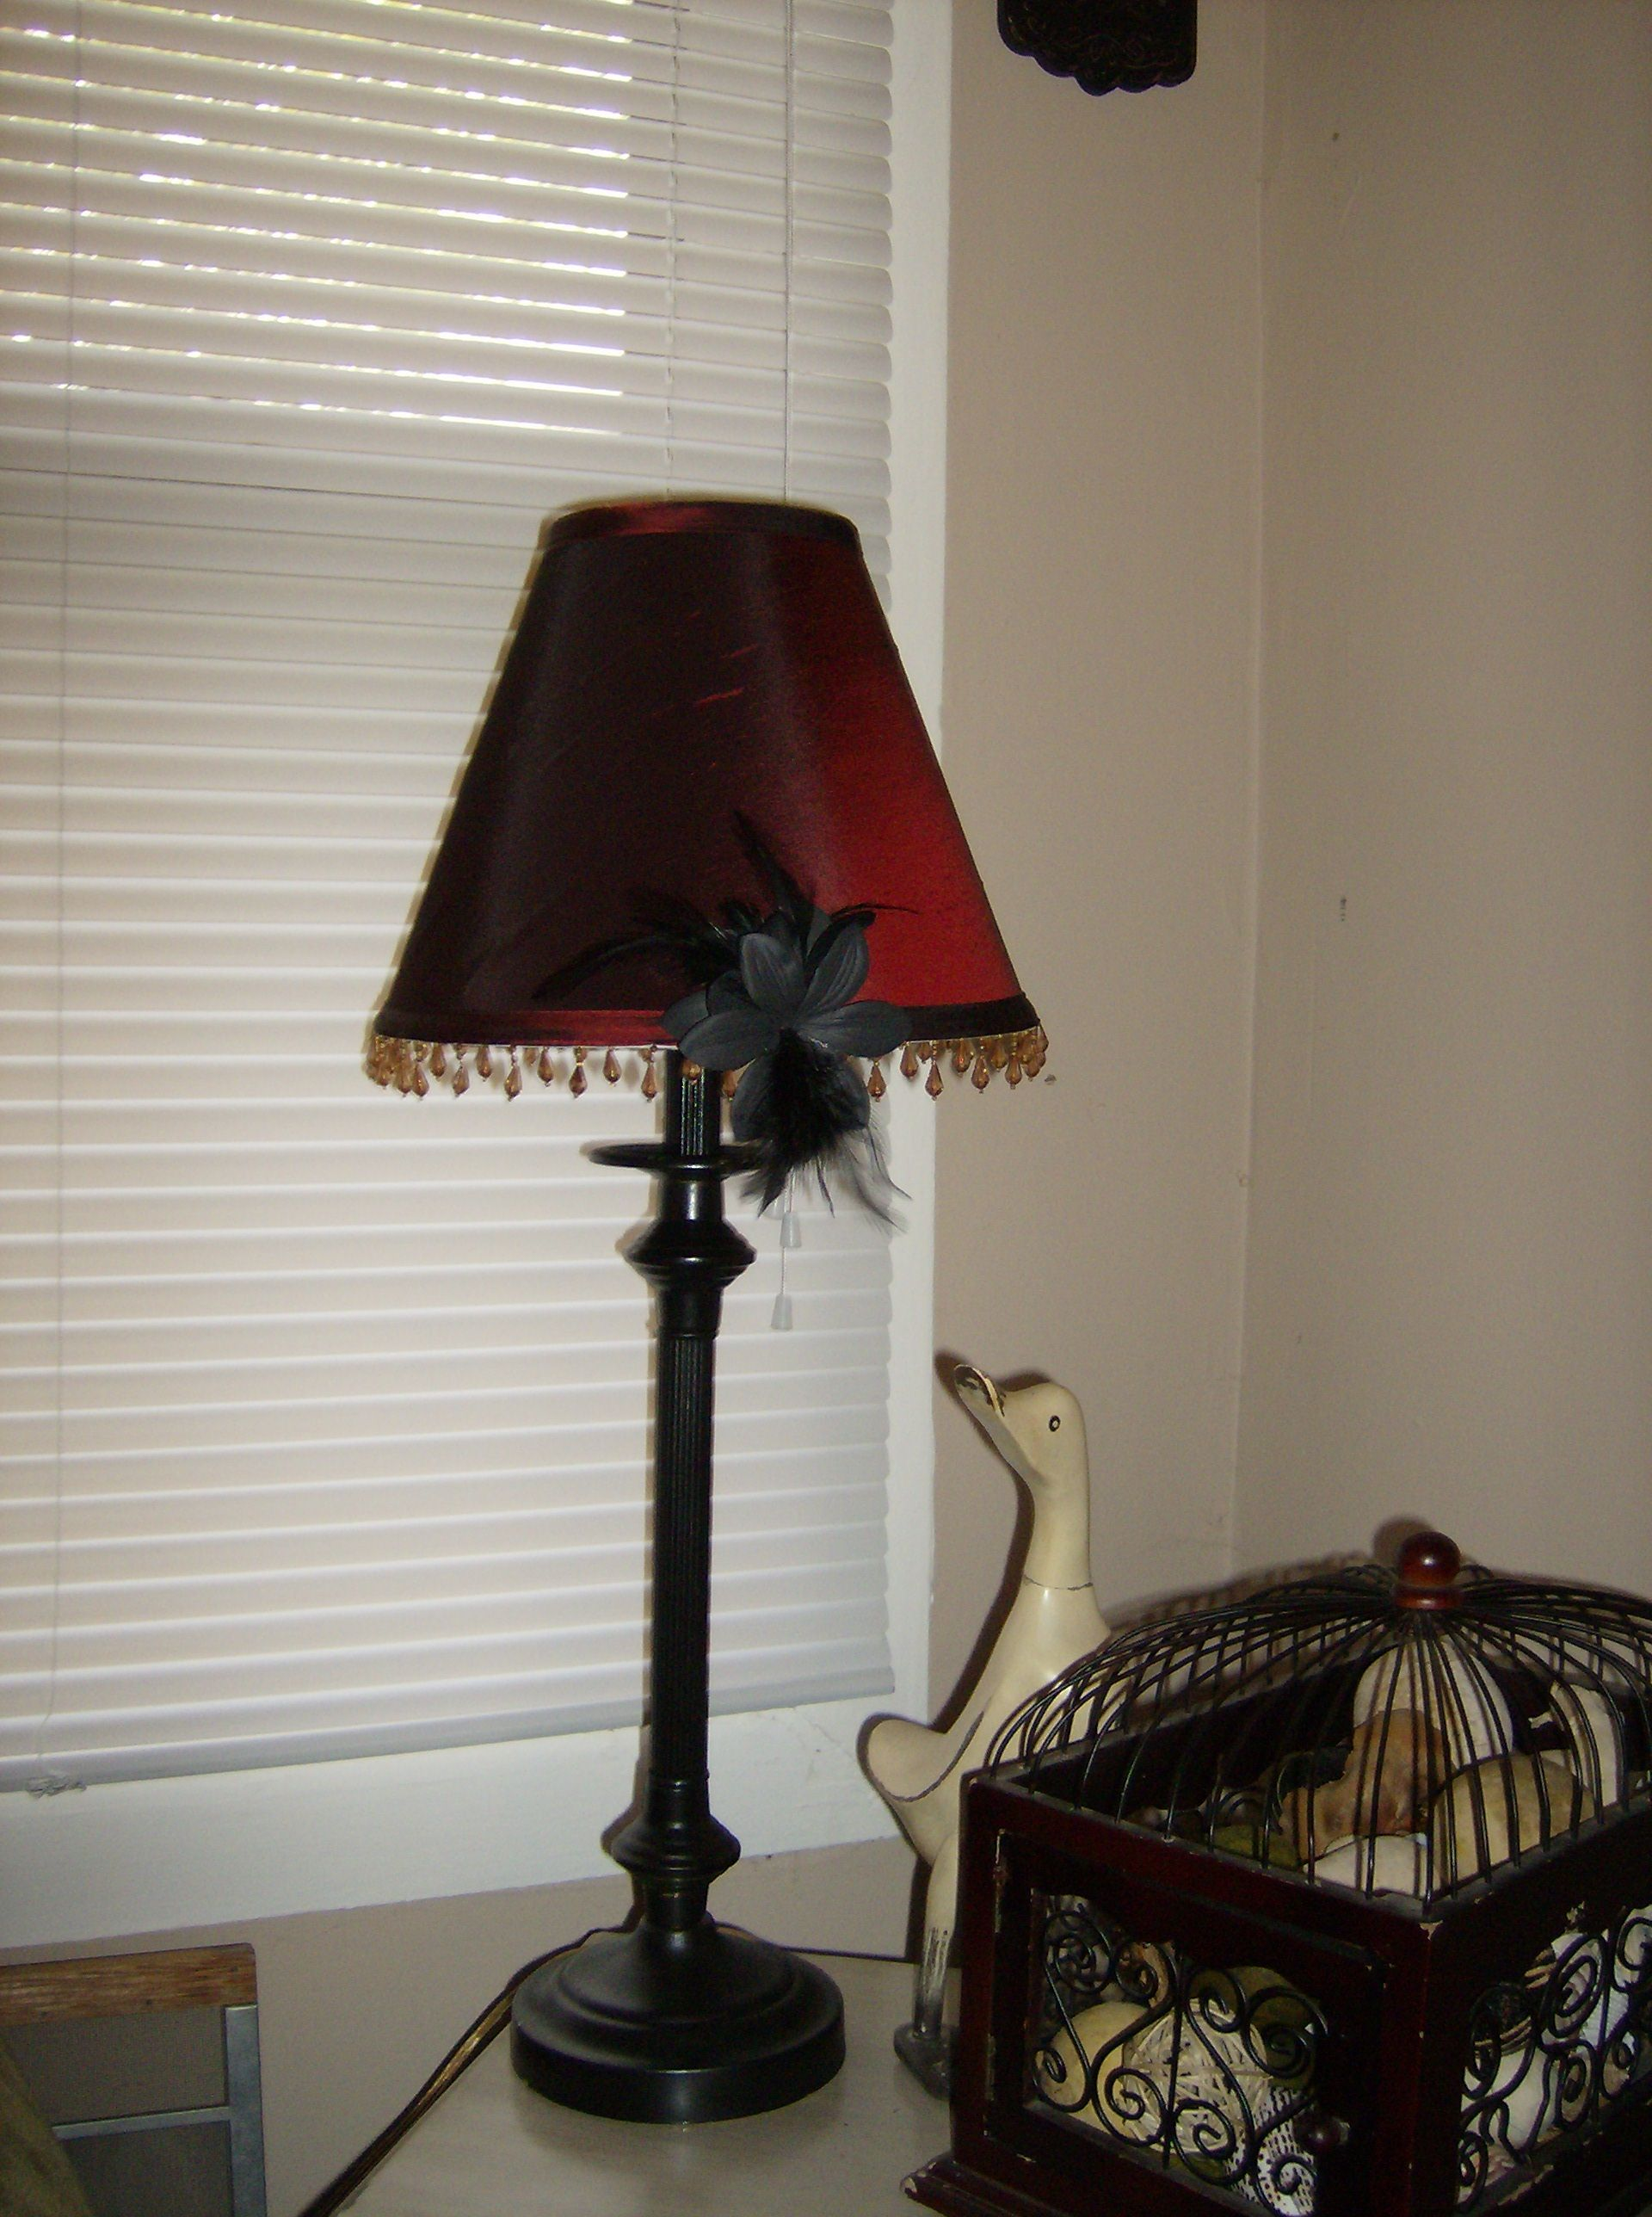 Hobby Lobby Lamp Shades Prepossessing Repurposed Lamp Shade Ala Hobby Lobby Projects  Pinterest Design Decoration